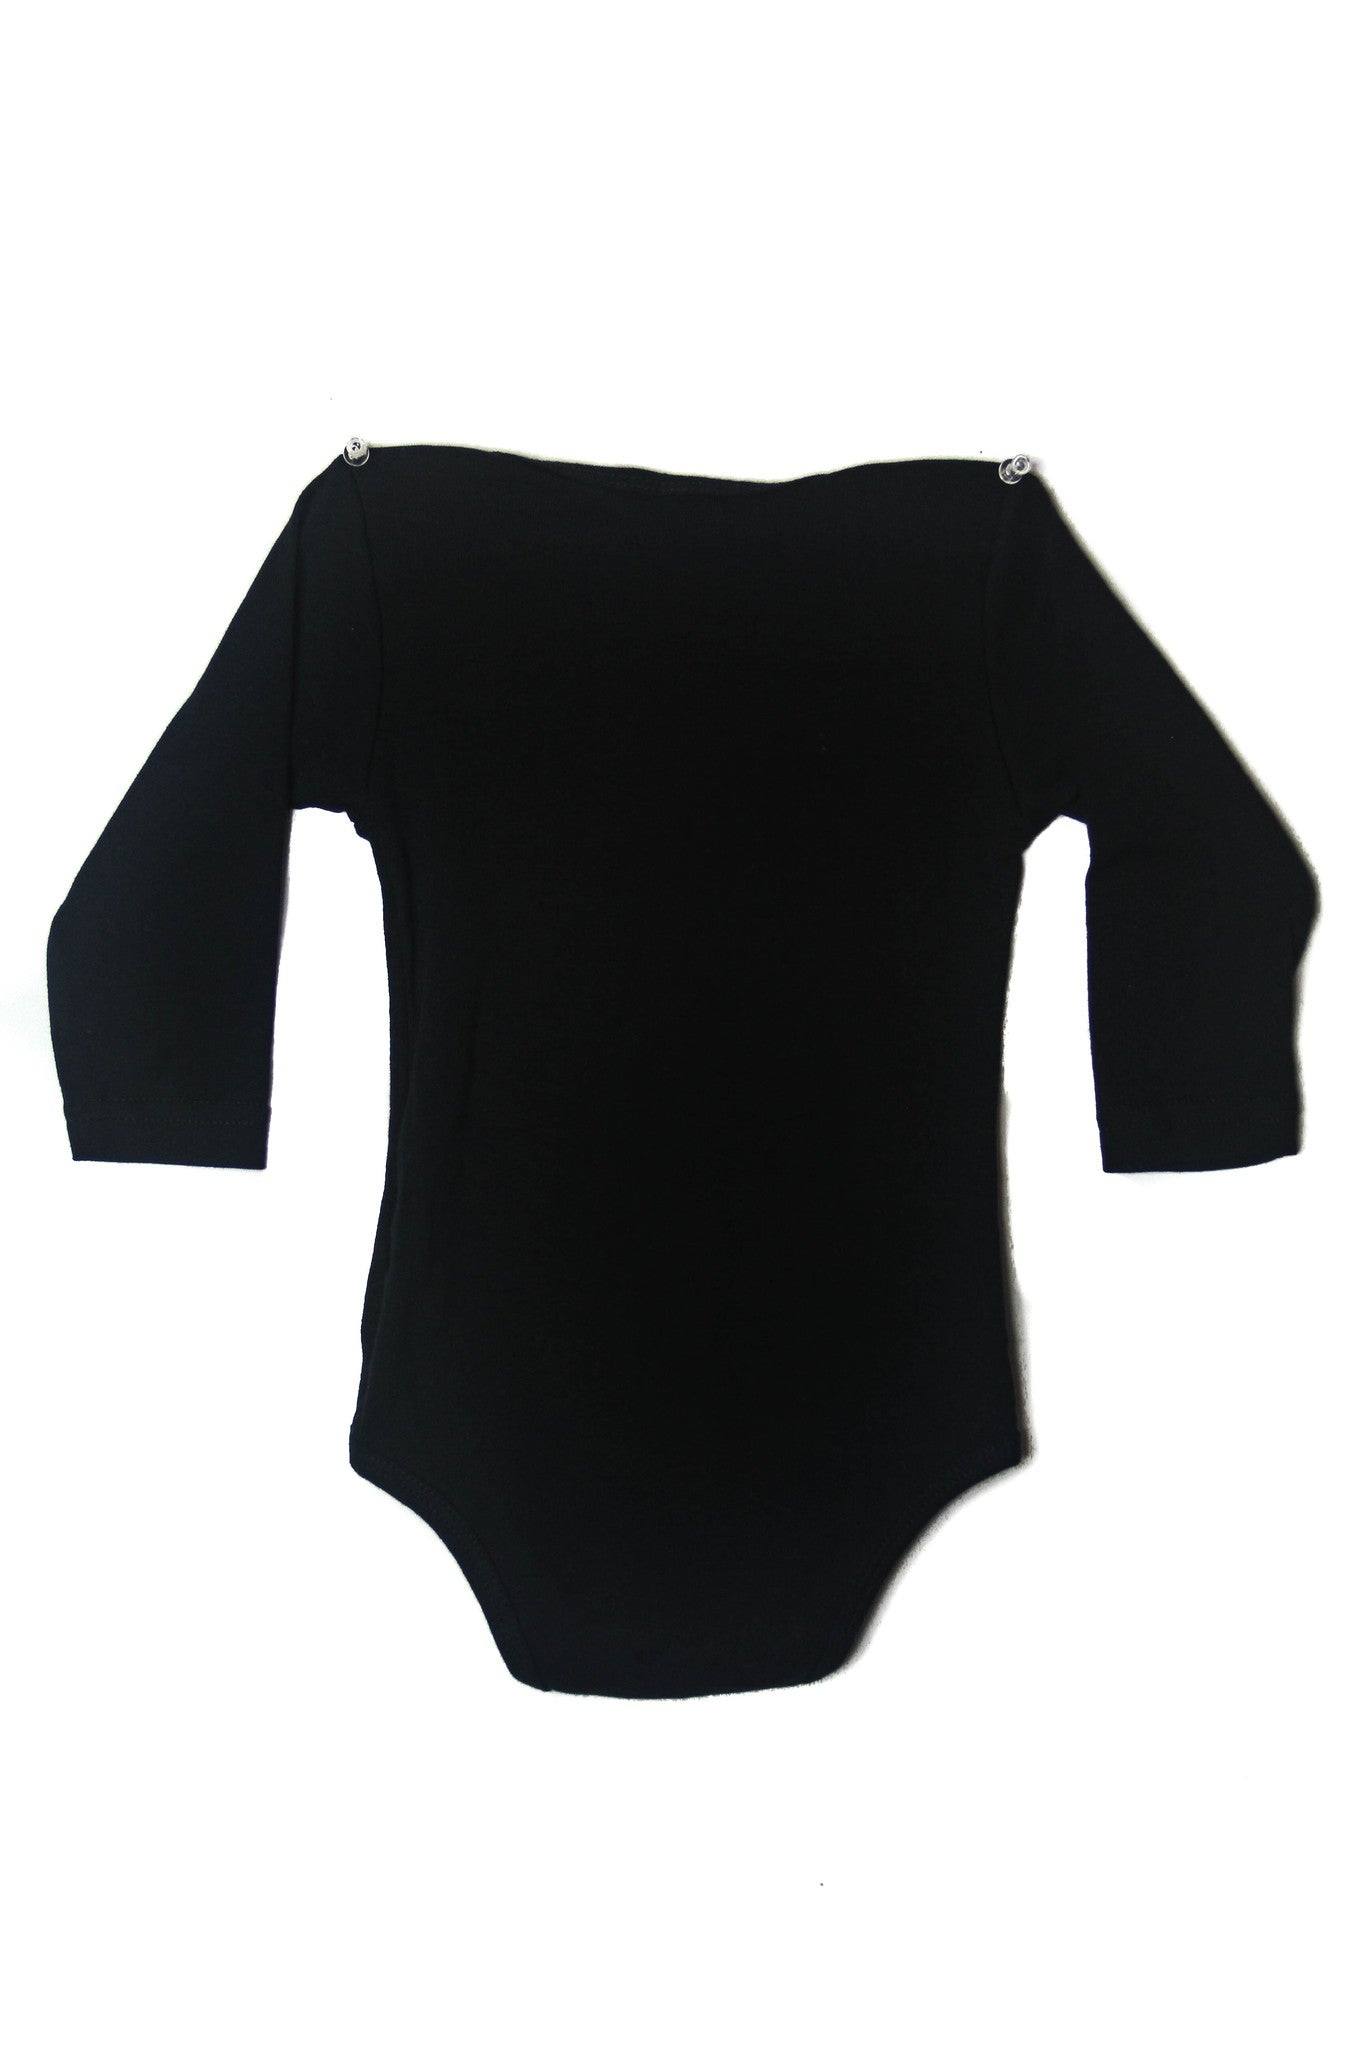 TINY KNIT ONESIE - Black